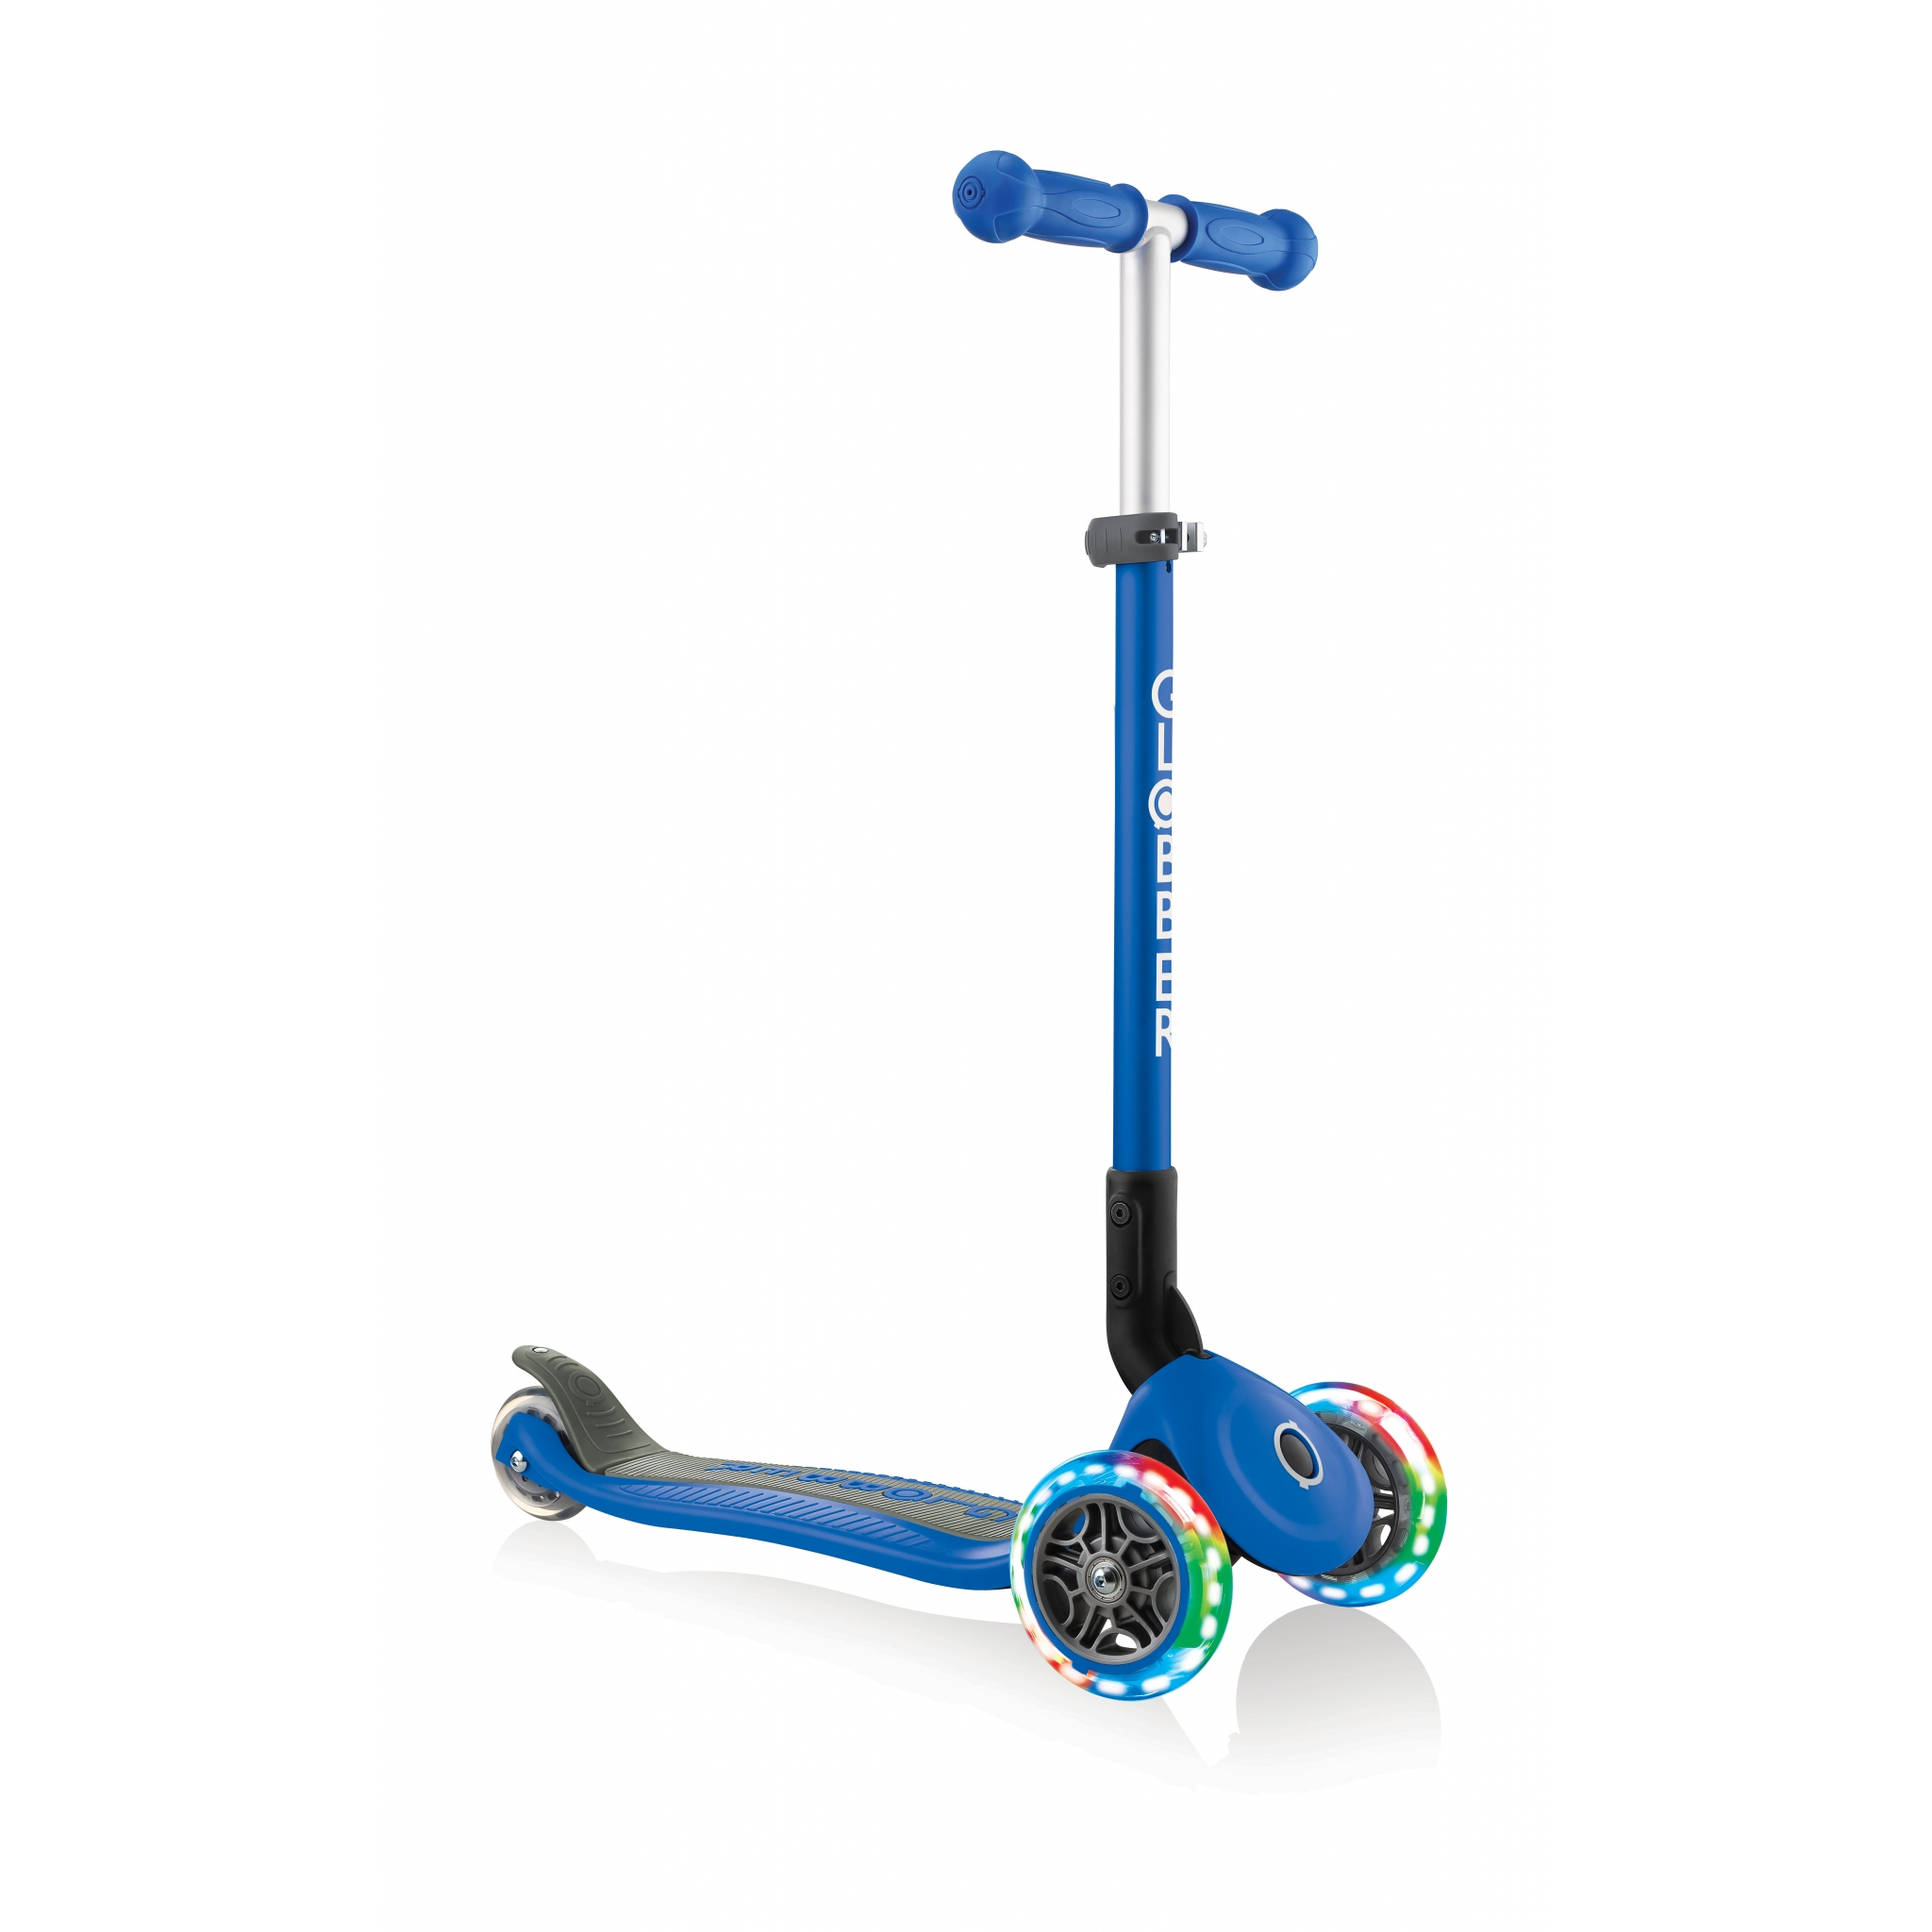 PRIMO-FOLDABLE-LIGHTS-3-wheel-foldable-scooter-light-up-scooter-for-kids-navy-blue 4